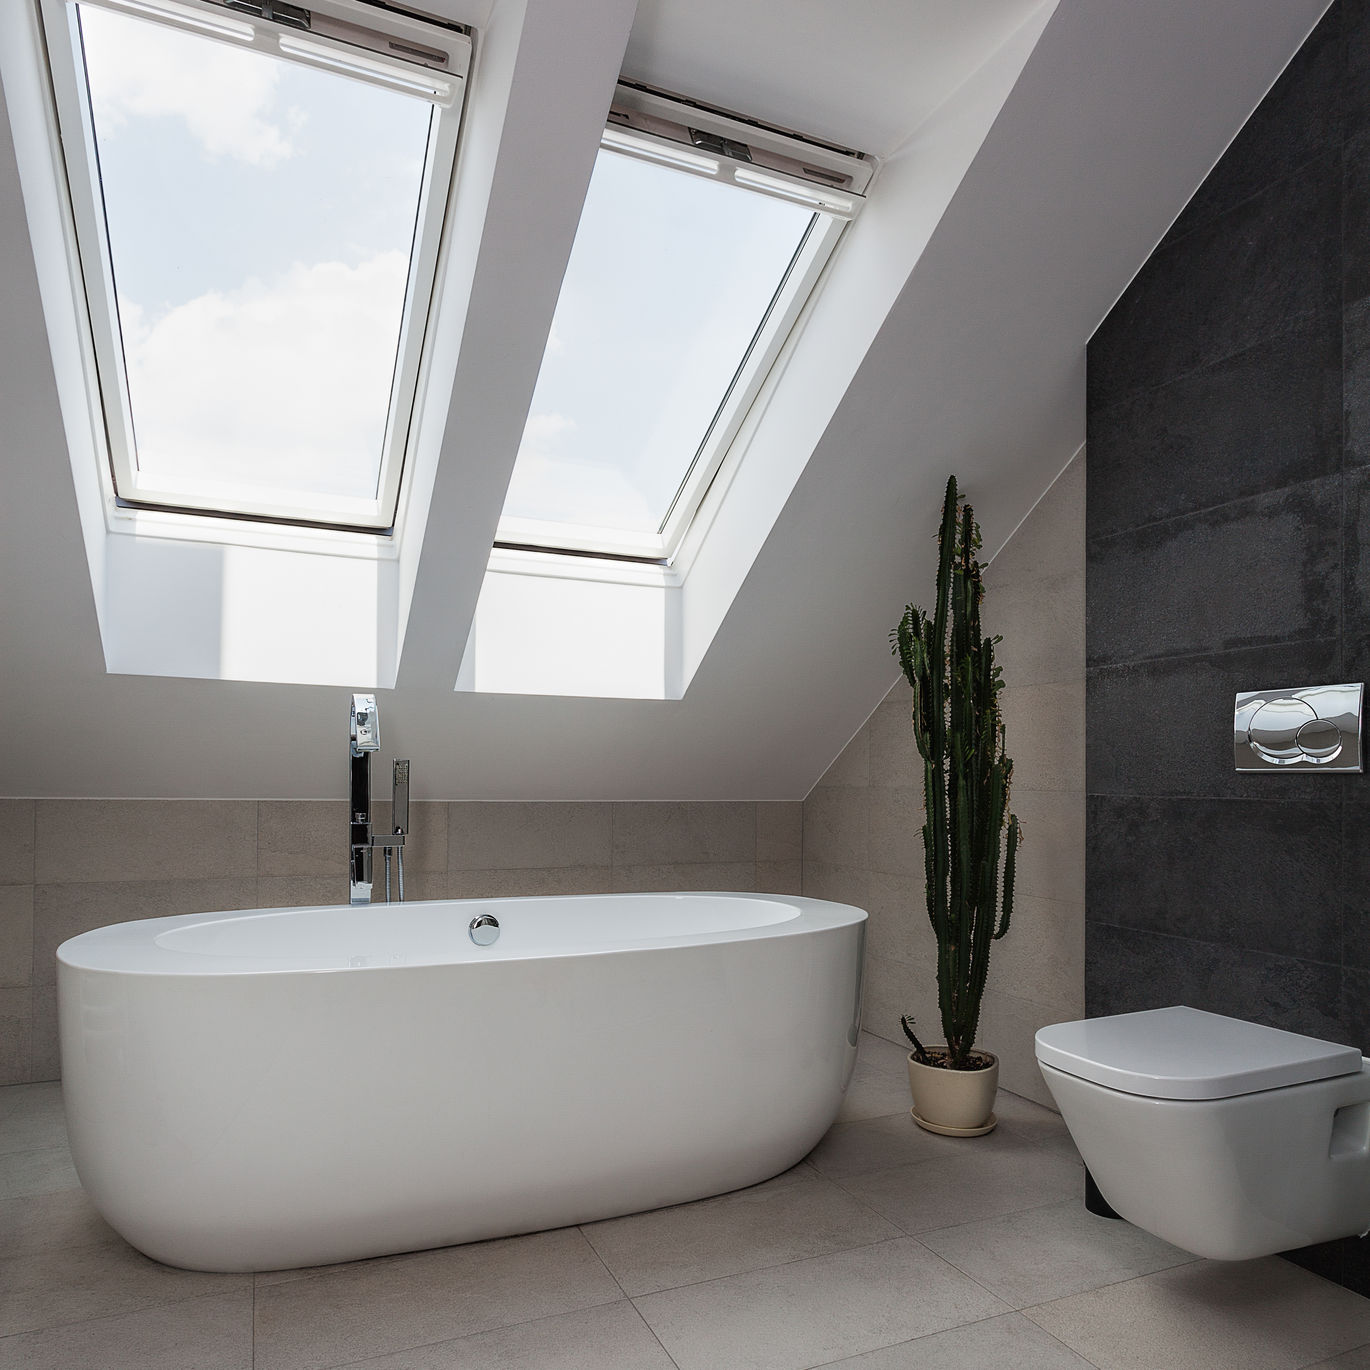 Loft conversion attic conversion swansea bridgend for Loft bathroom ideas design